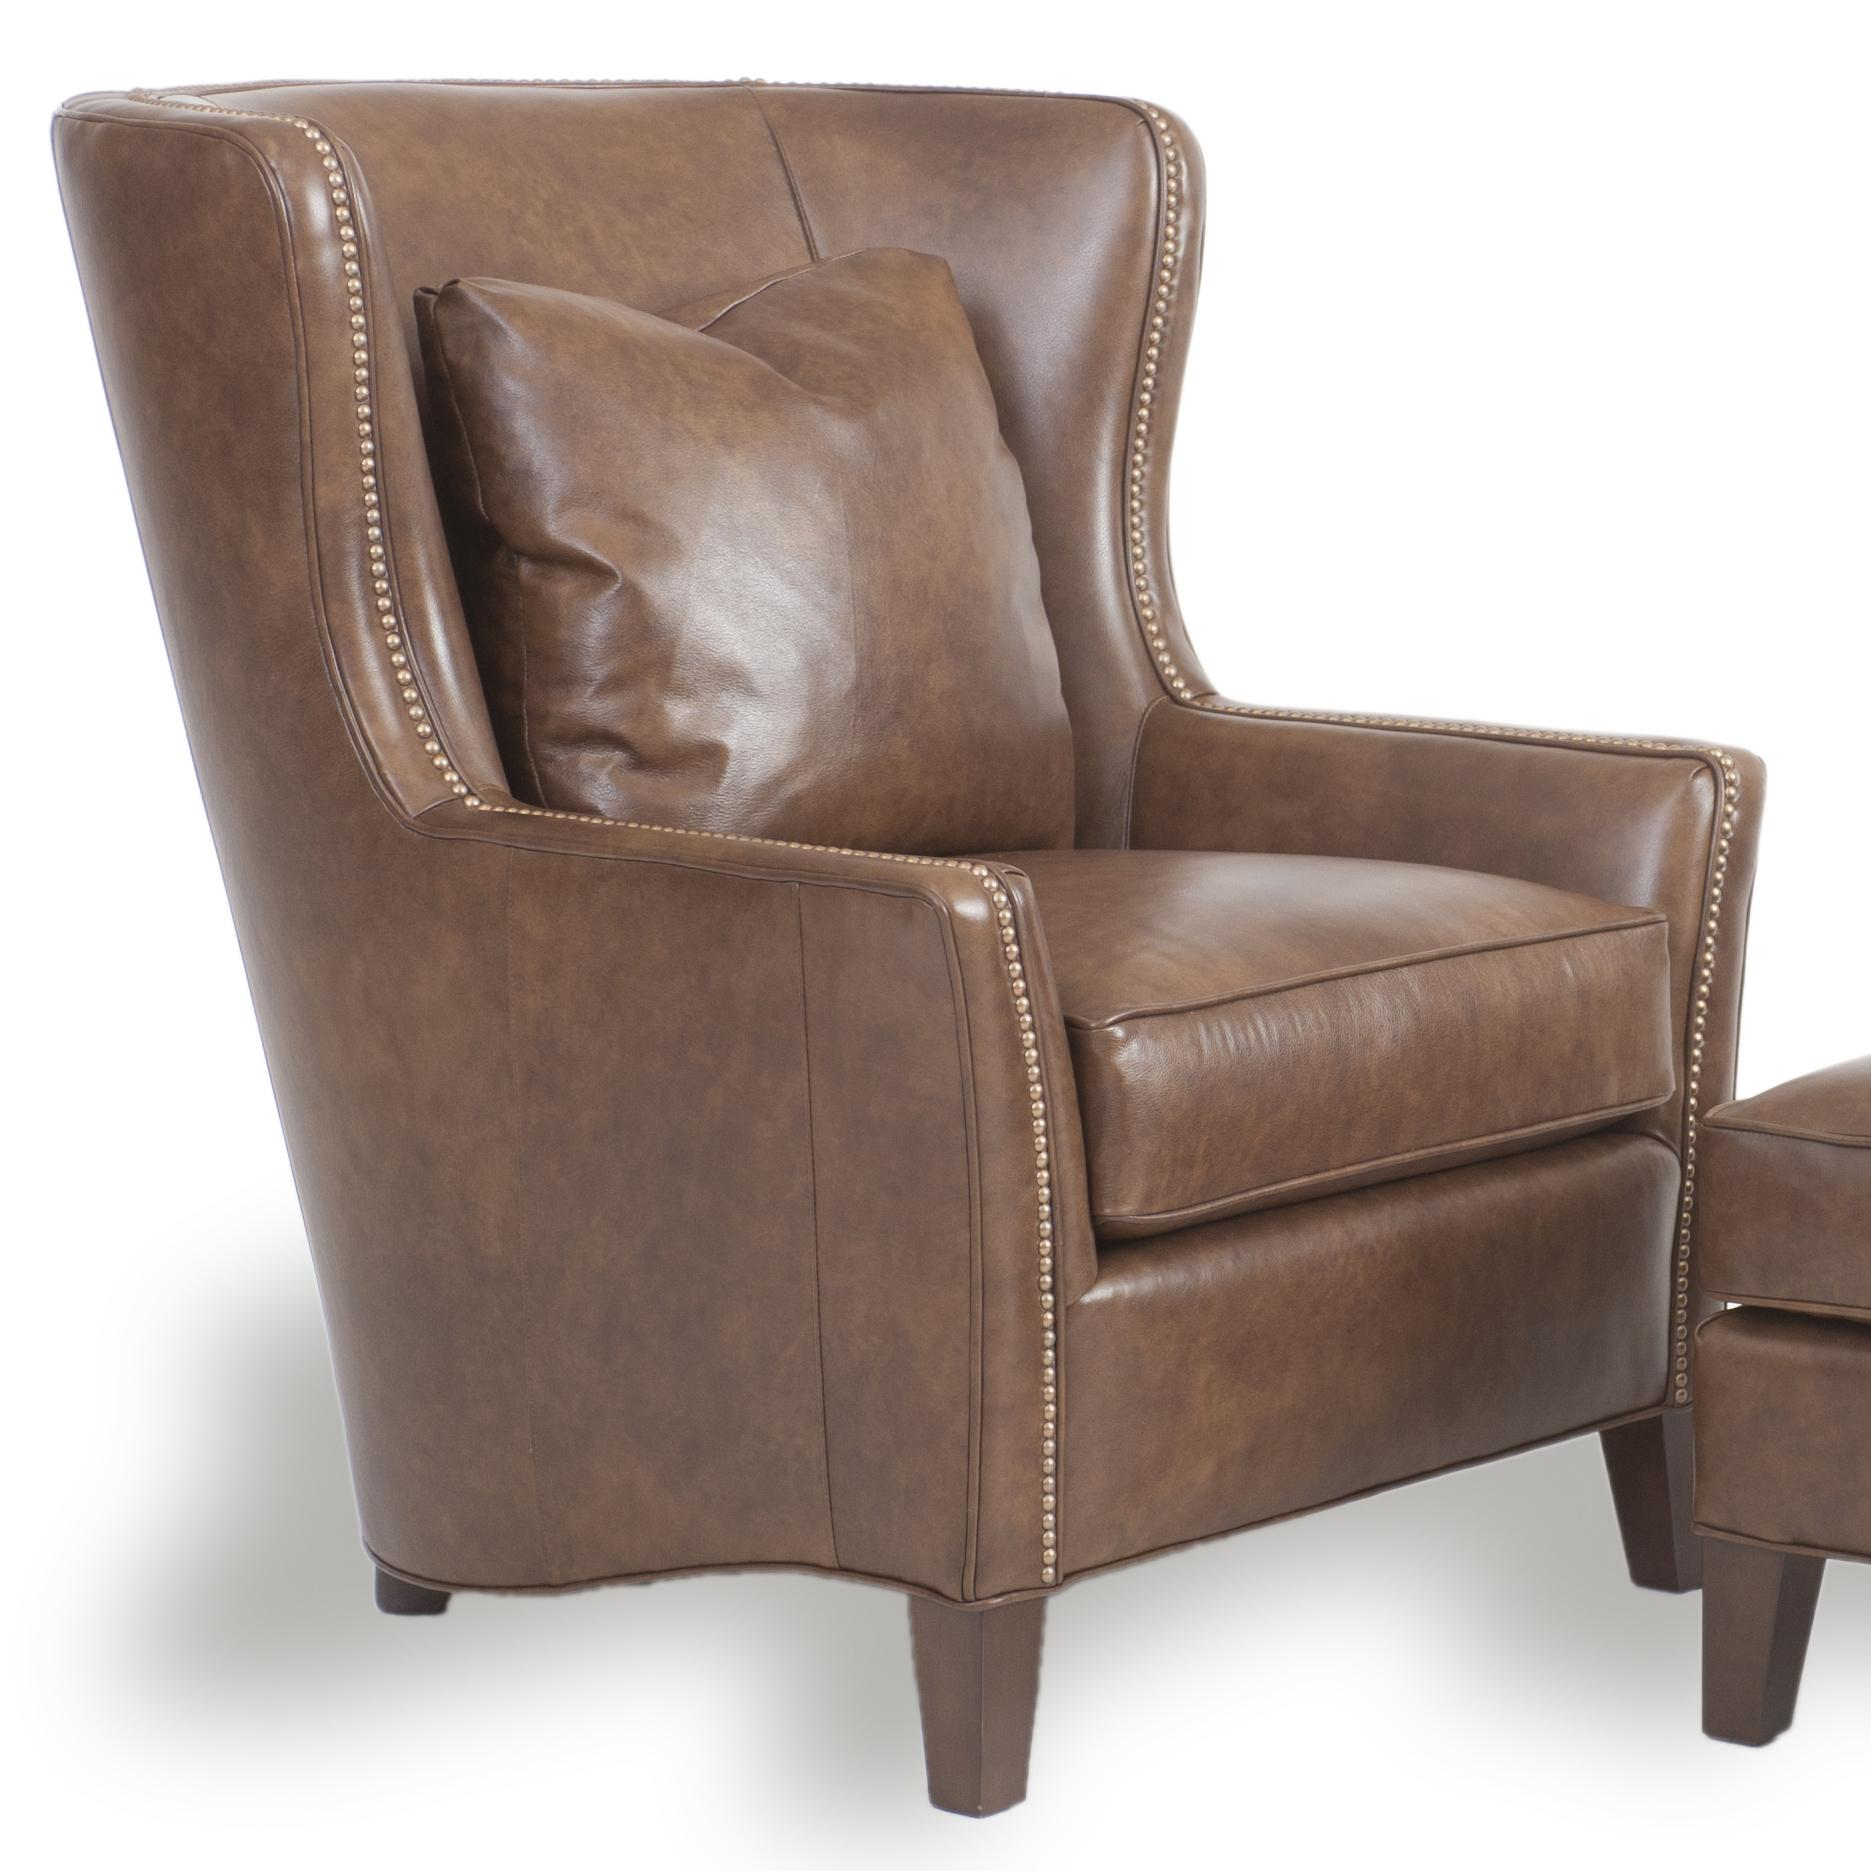 Accent Chairs and Ottomans SB Upholstered Wingback Chair by Smith Brothers at Pilgrim Furniture City